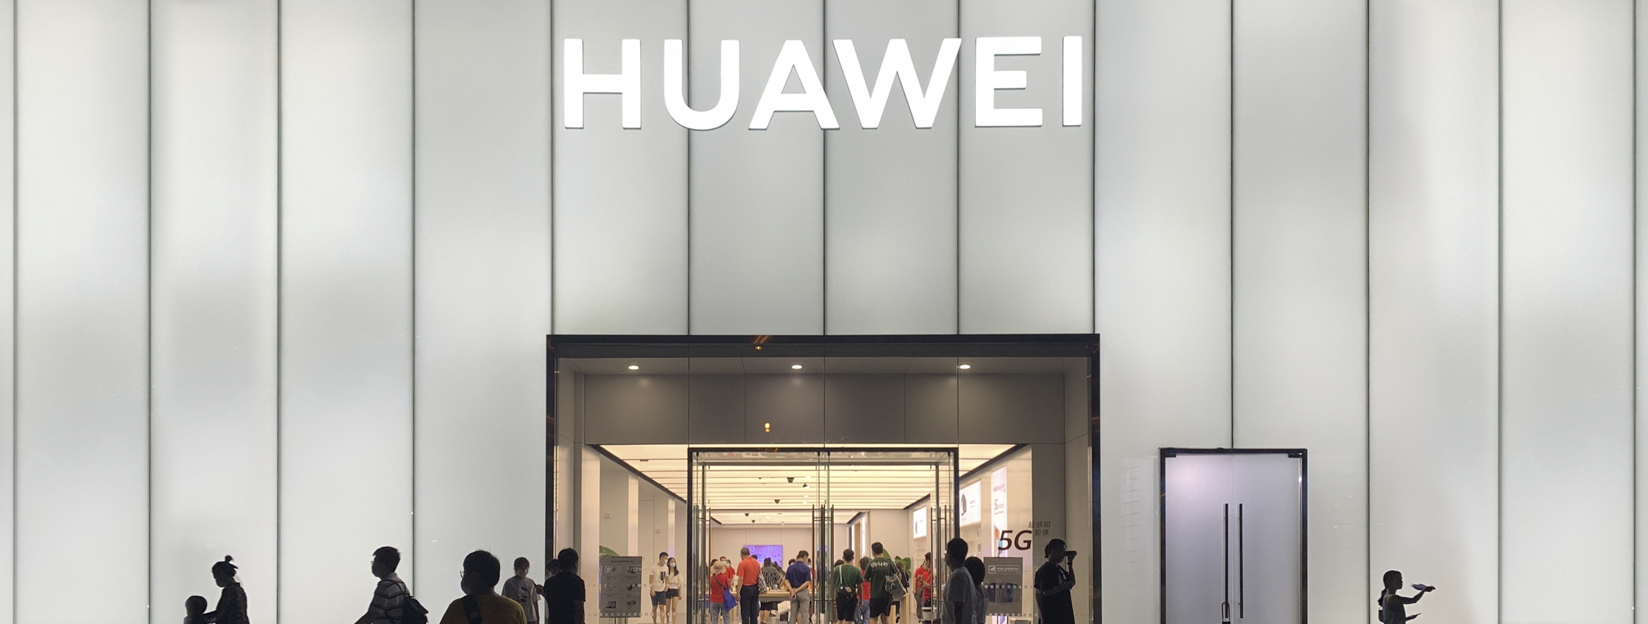 Will Huawei Survive the US Chip Ban?